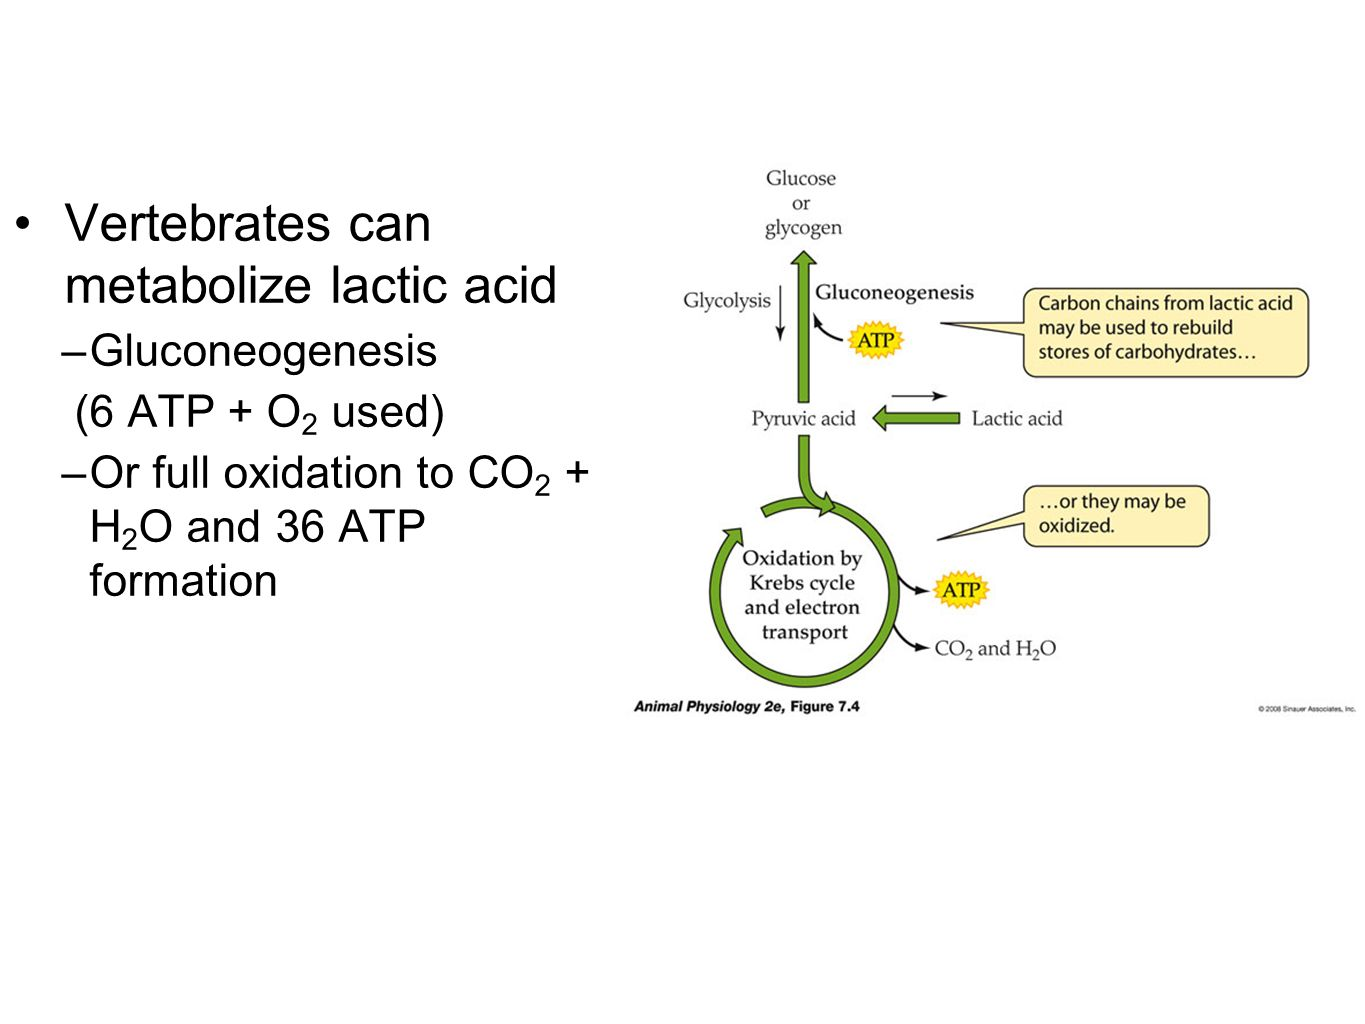 Vertebrates can metabolize lactic acid –Gluconeogenesis (6 ATP + O 2 used) –Or full oxidation to CO 2 + H 2 O and 36 ATP formation